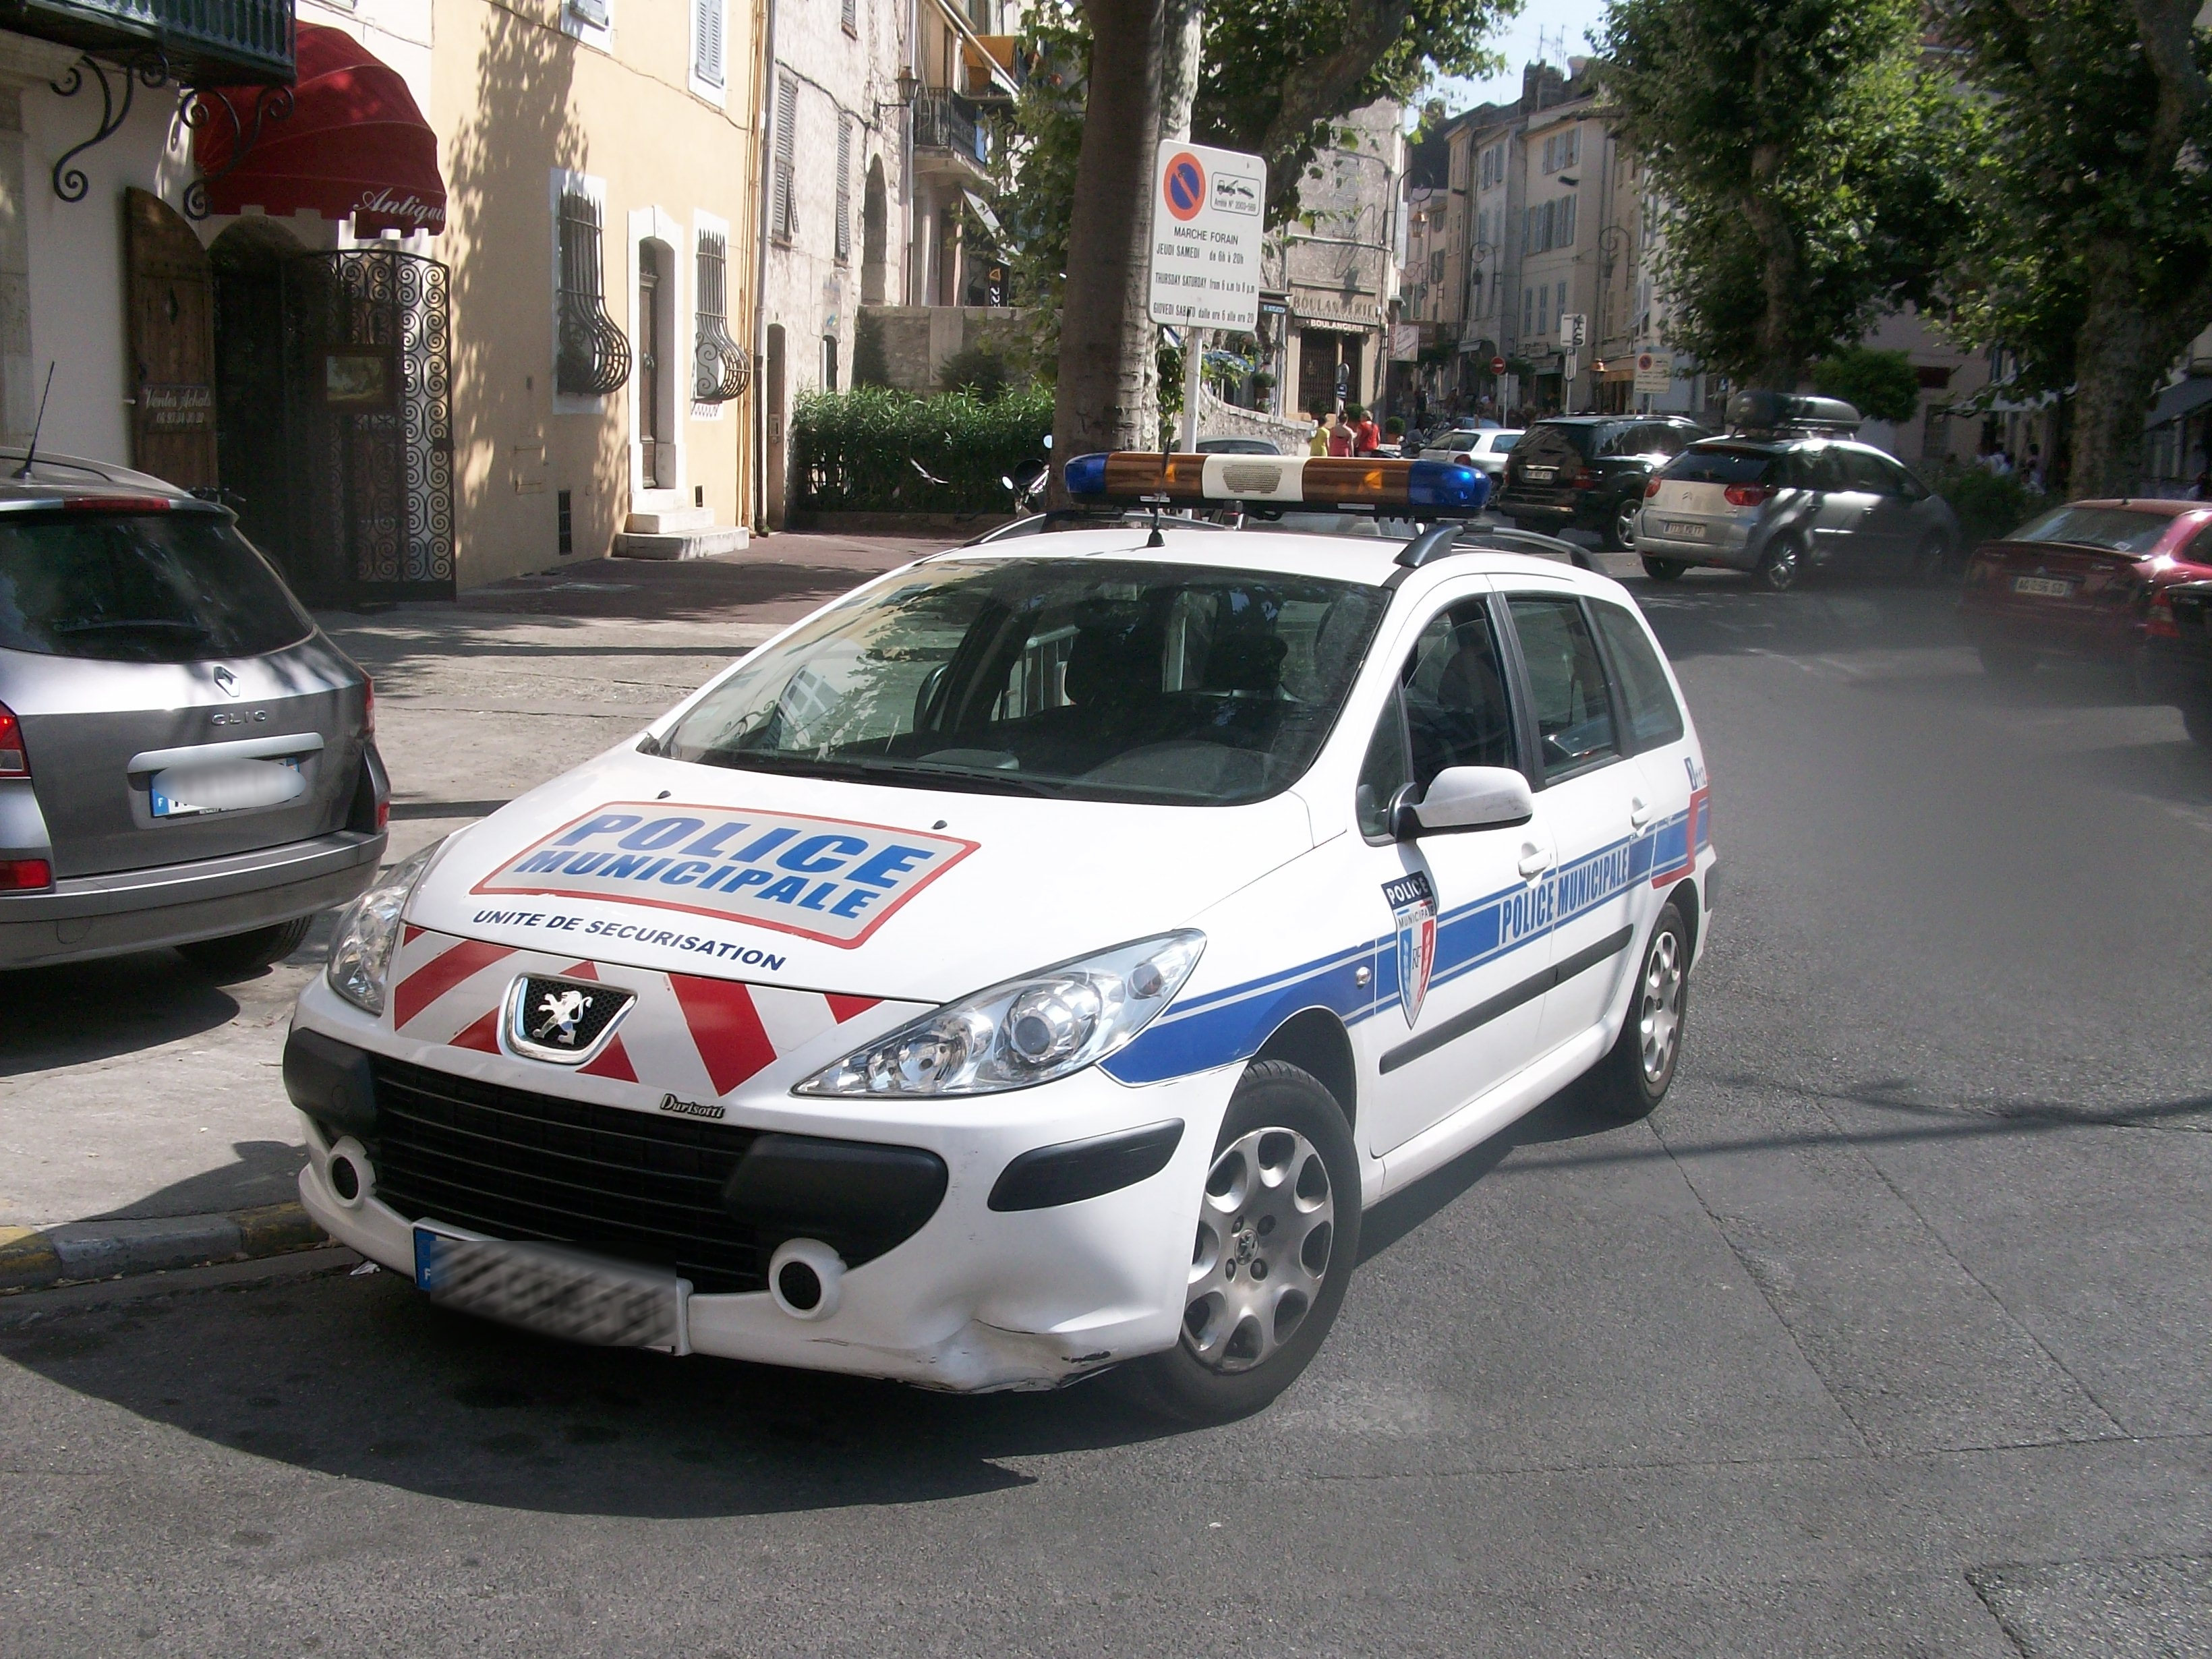 Photo d'illustration d'une voiture de police municipale @DR